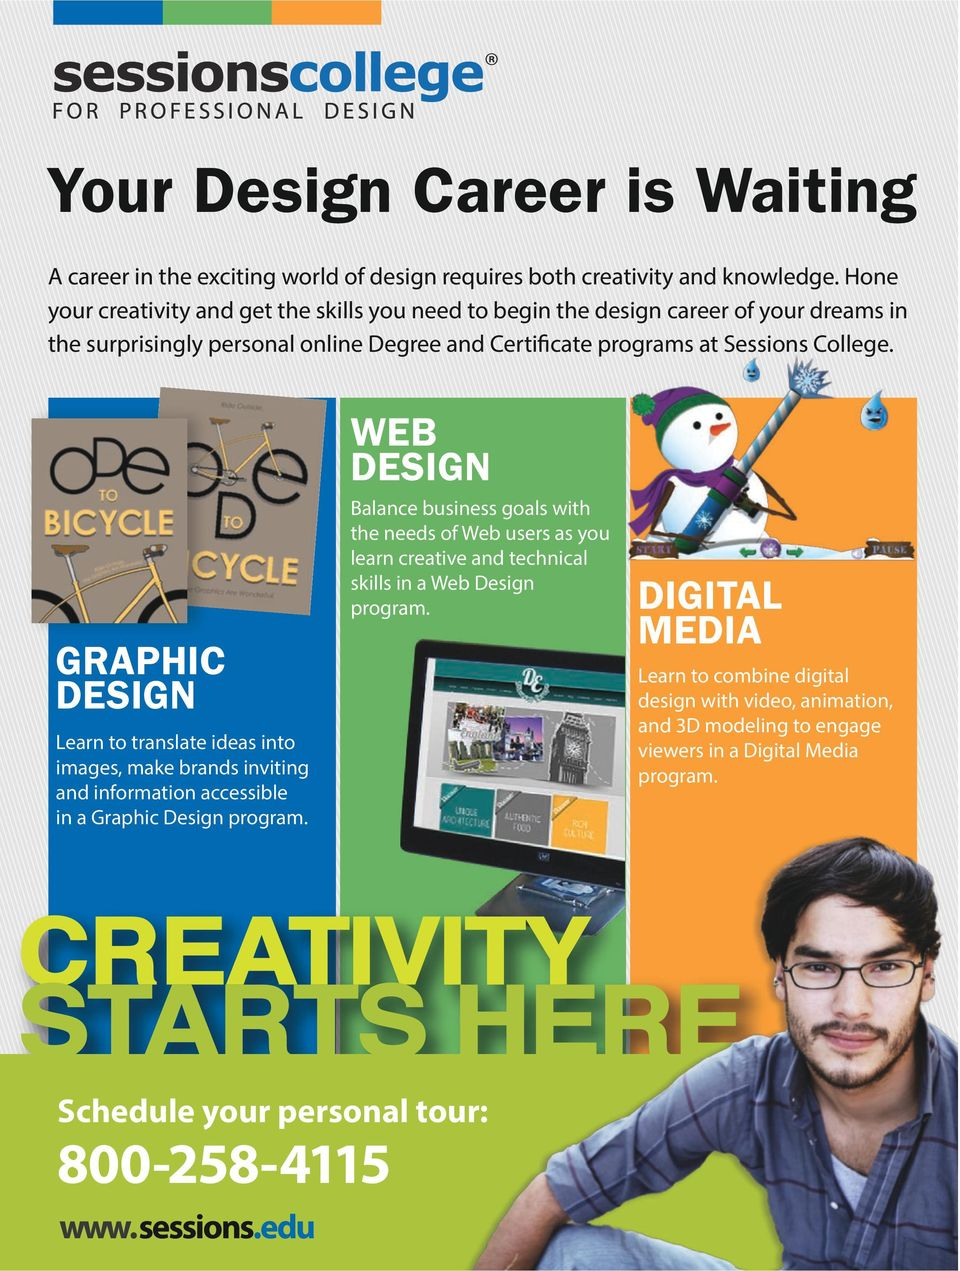 GRAPHIC DESIGN Learn to translate ideas into images, make brands inviting and information accessible in a Graphic Design program.